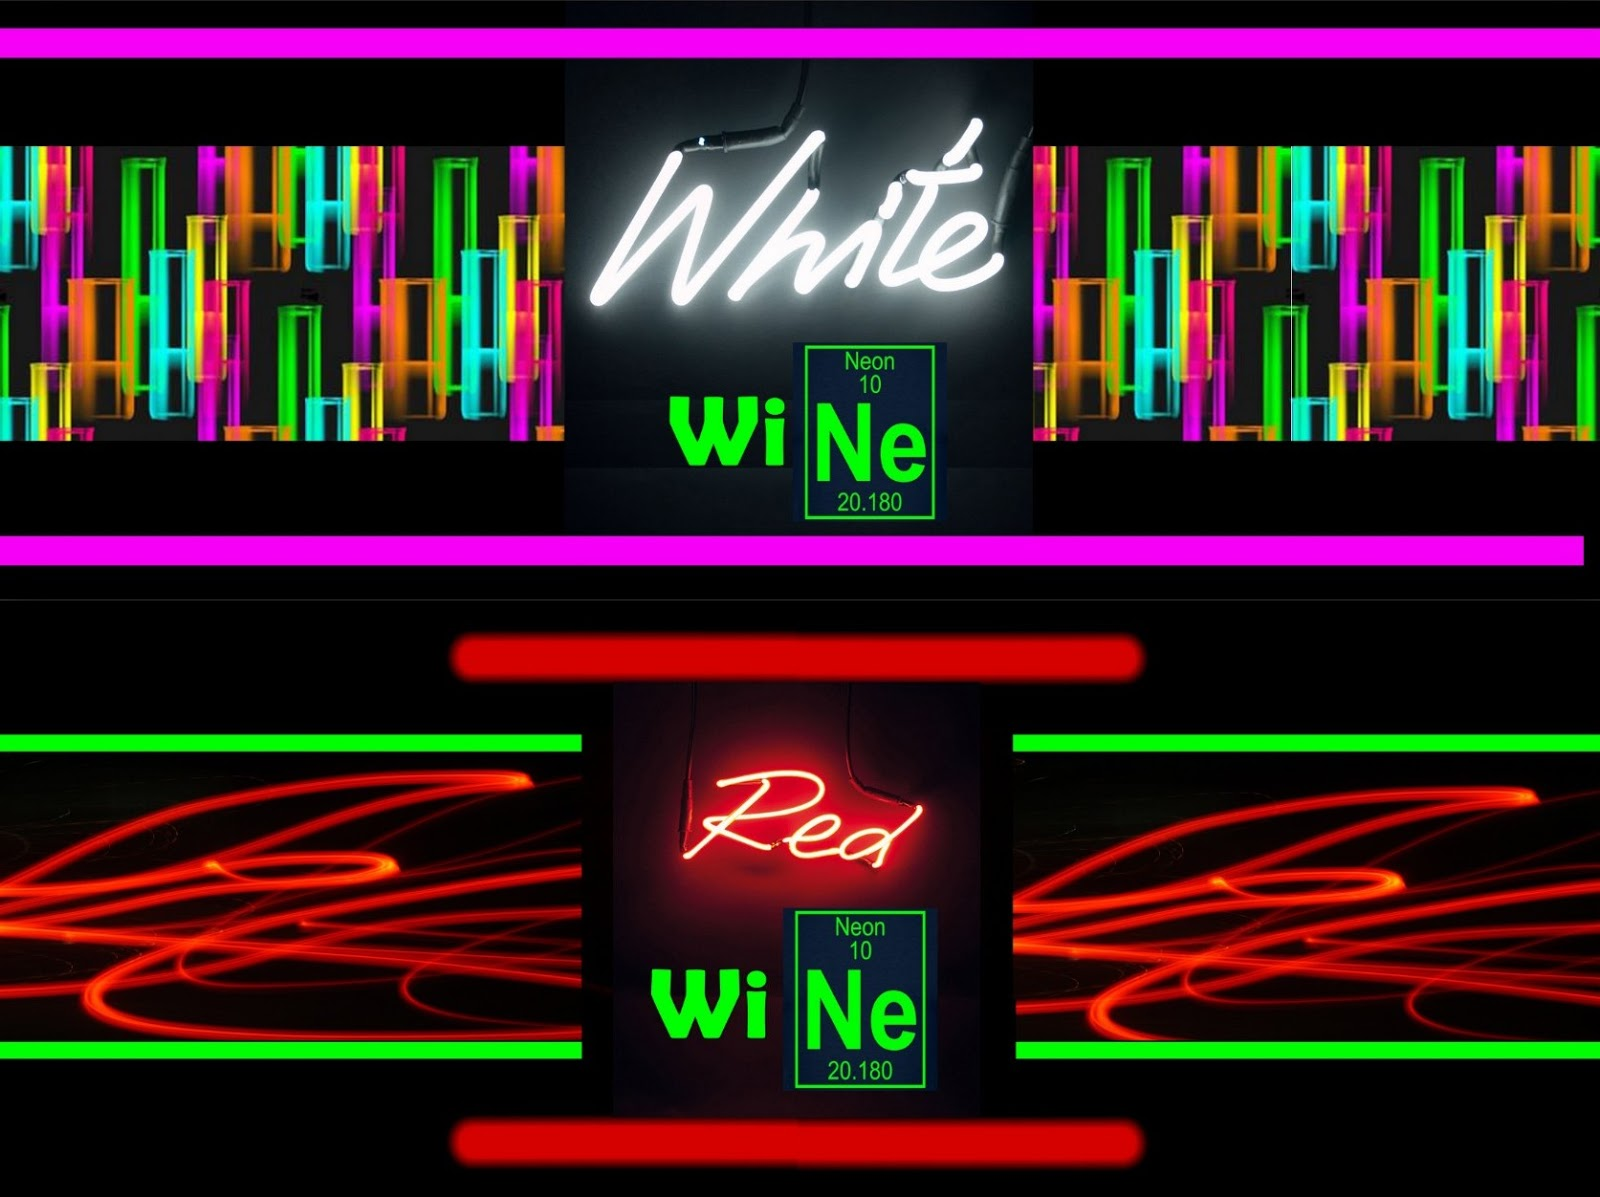 Invite and delight neon party i designed wine labels to go with my theme i used the ne element sign as well as light up sign images i found then put it all together with photoshop gamestrikefo Images